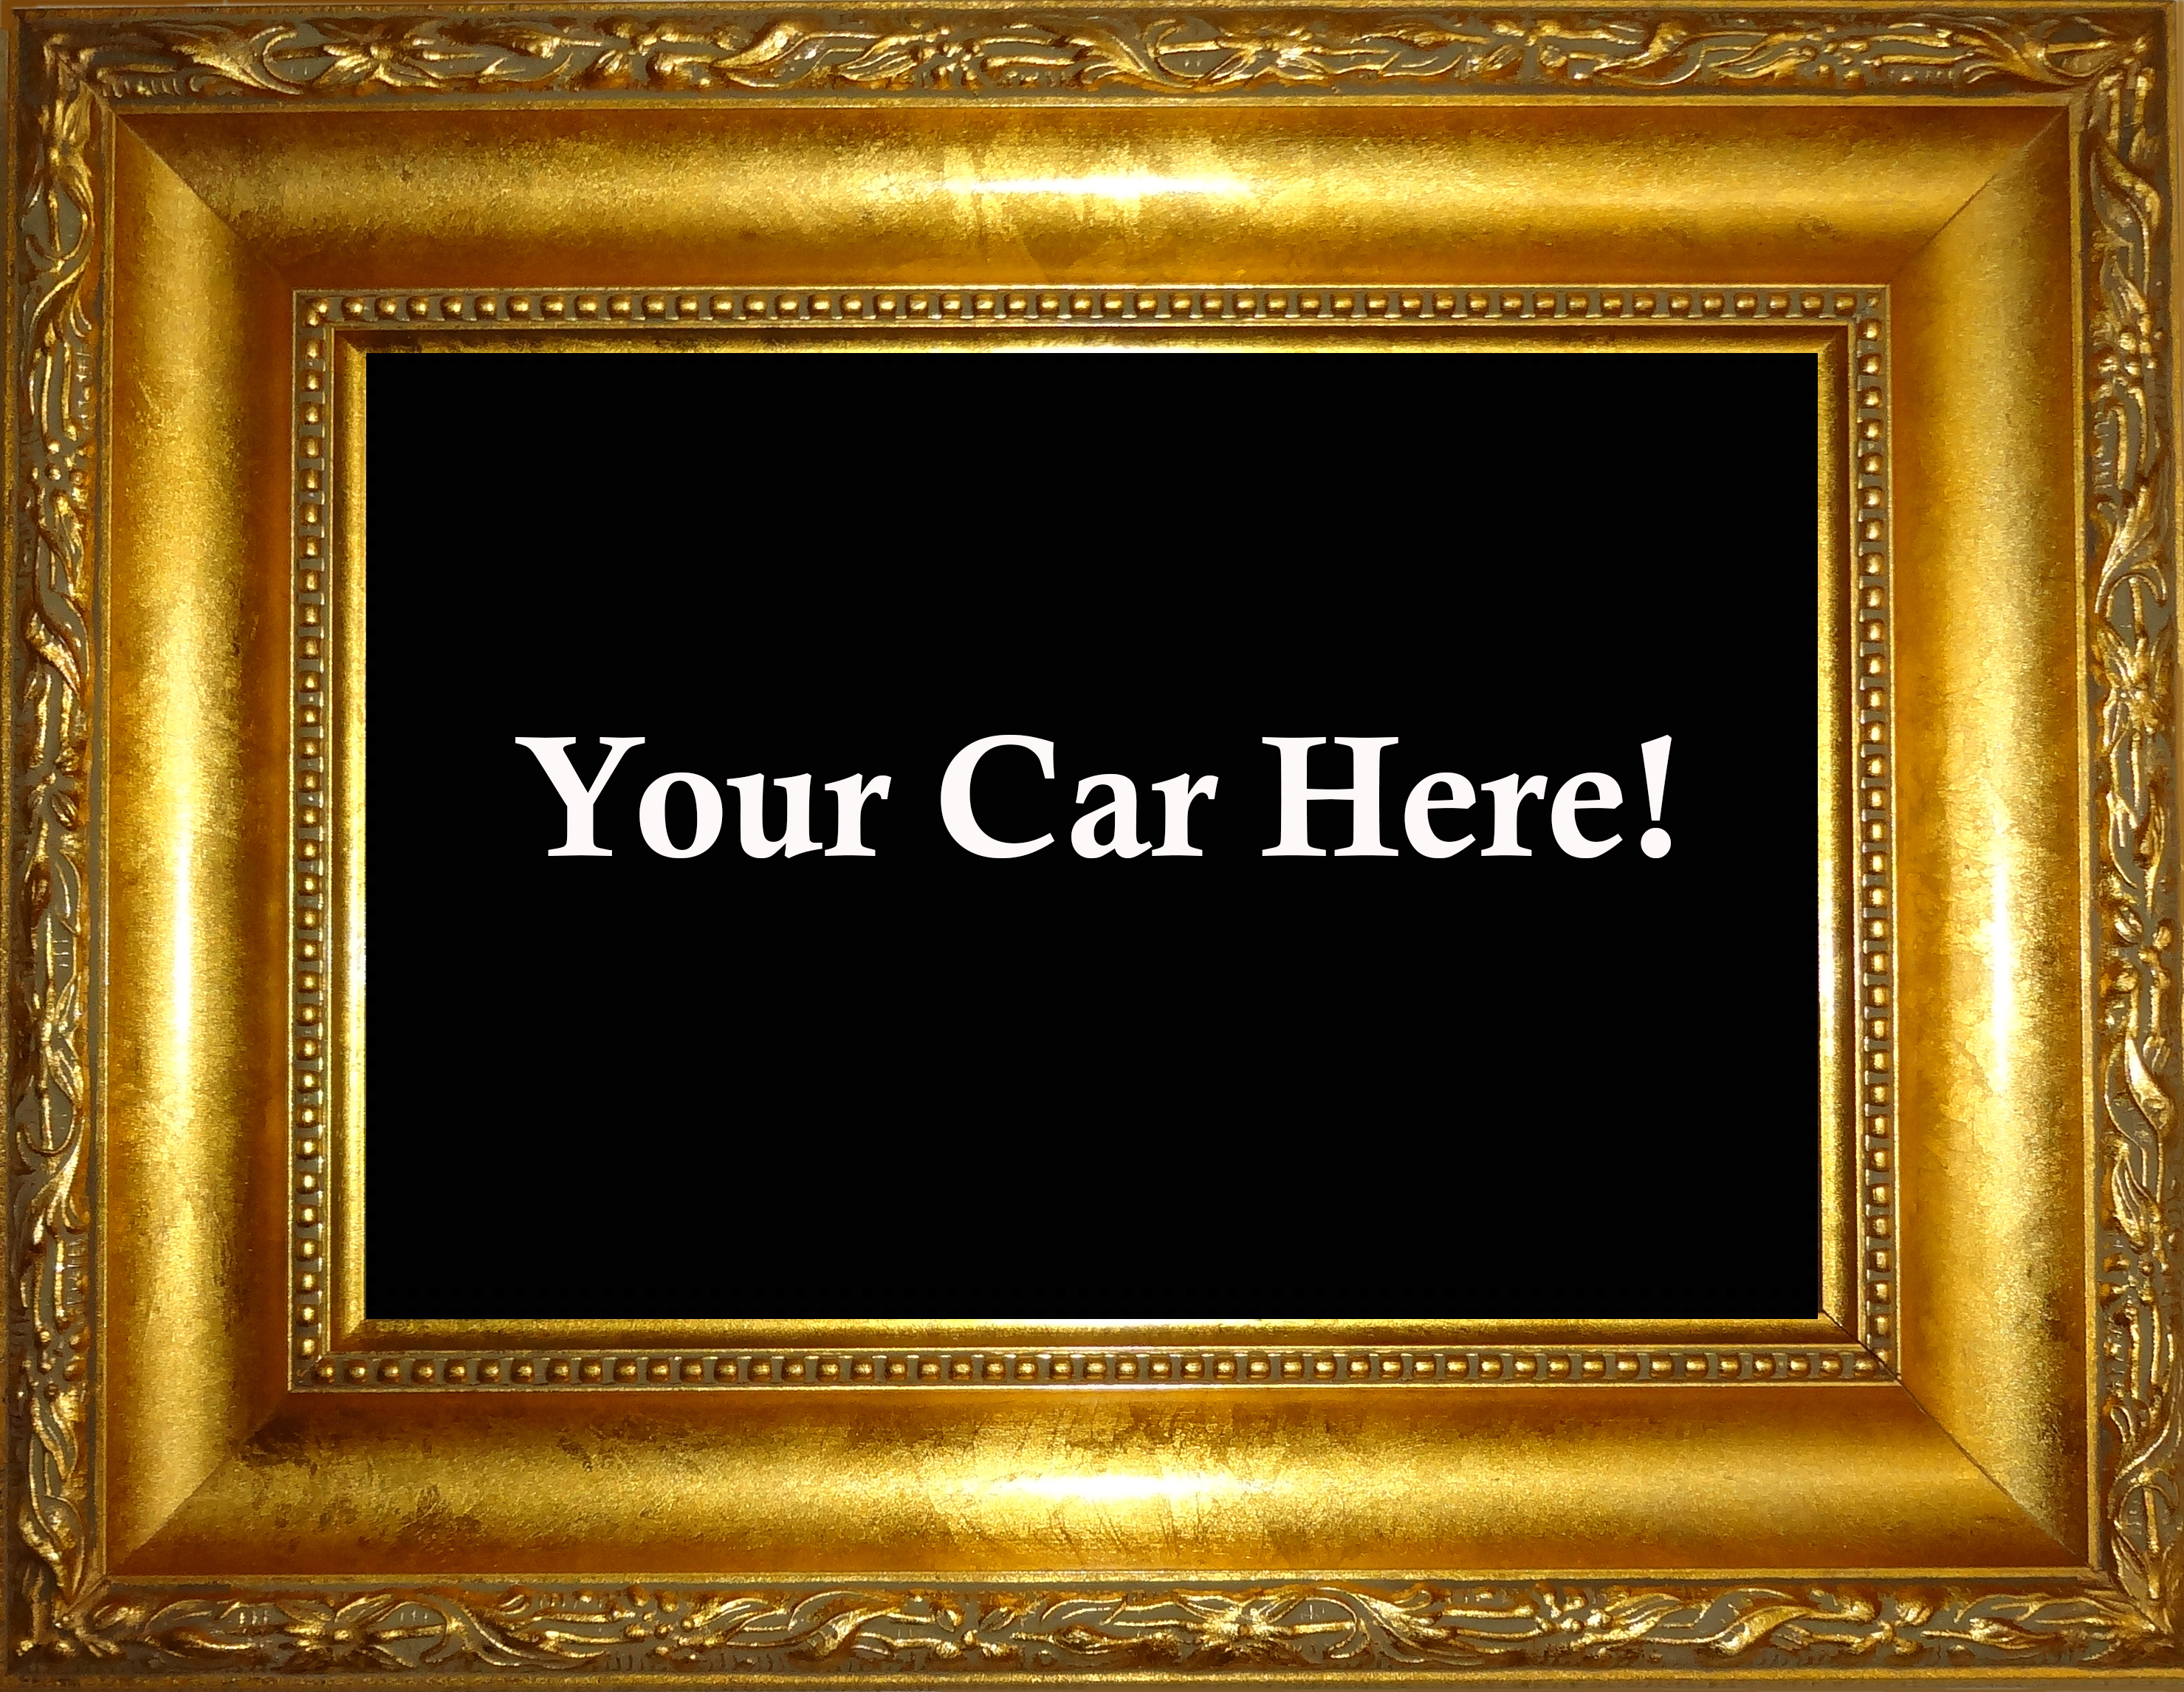 Your car here hg0eop